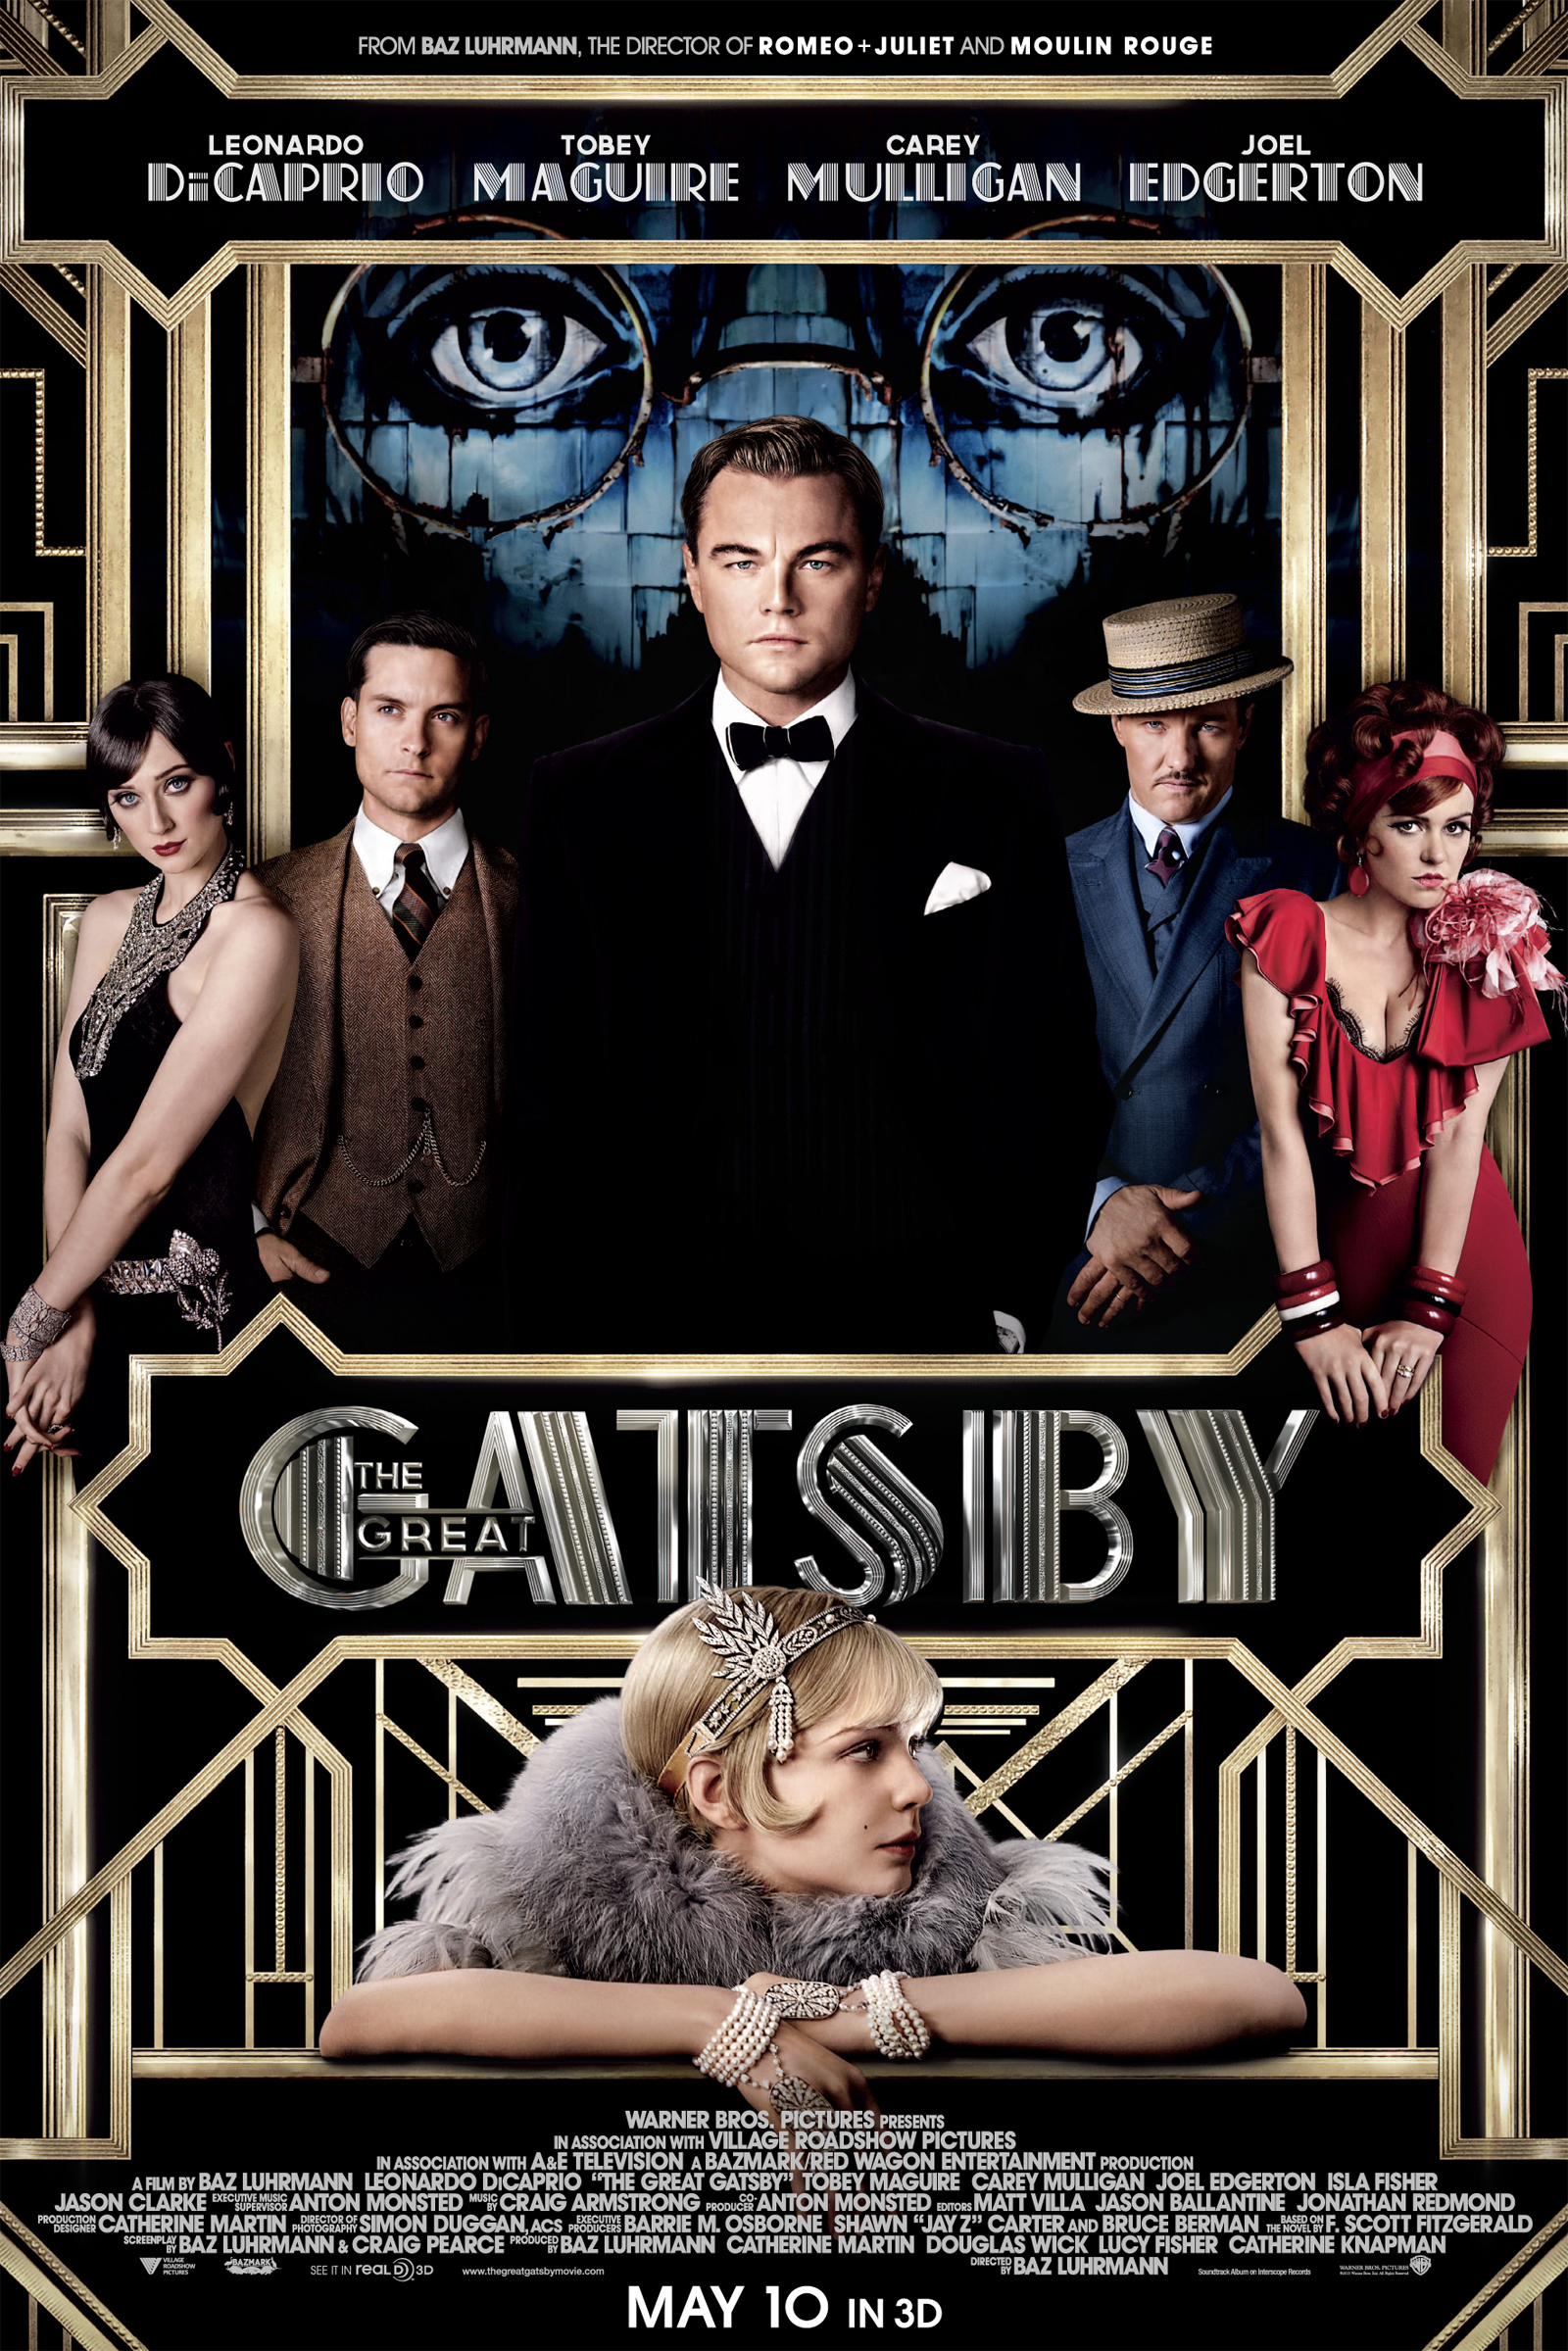 GREAT GATSBY IN 3D, THE (IN DIGITAL) (PG-13)